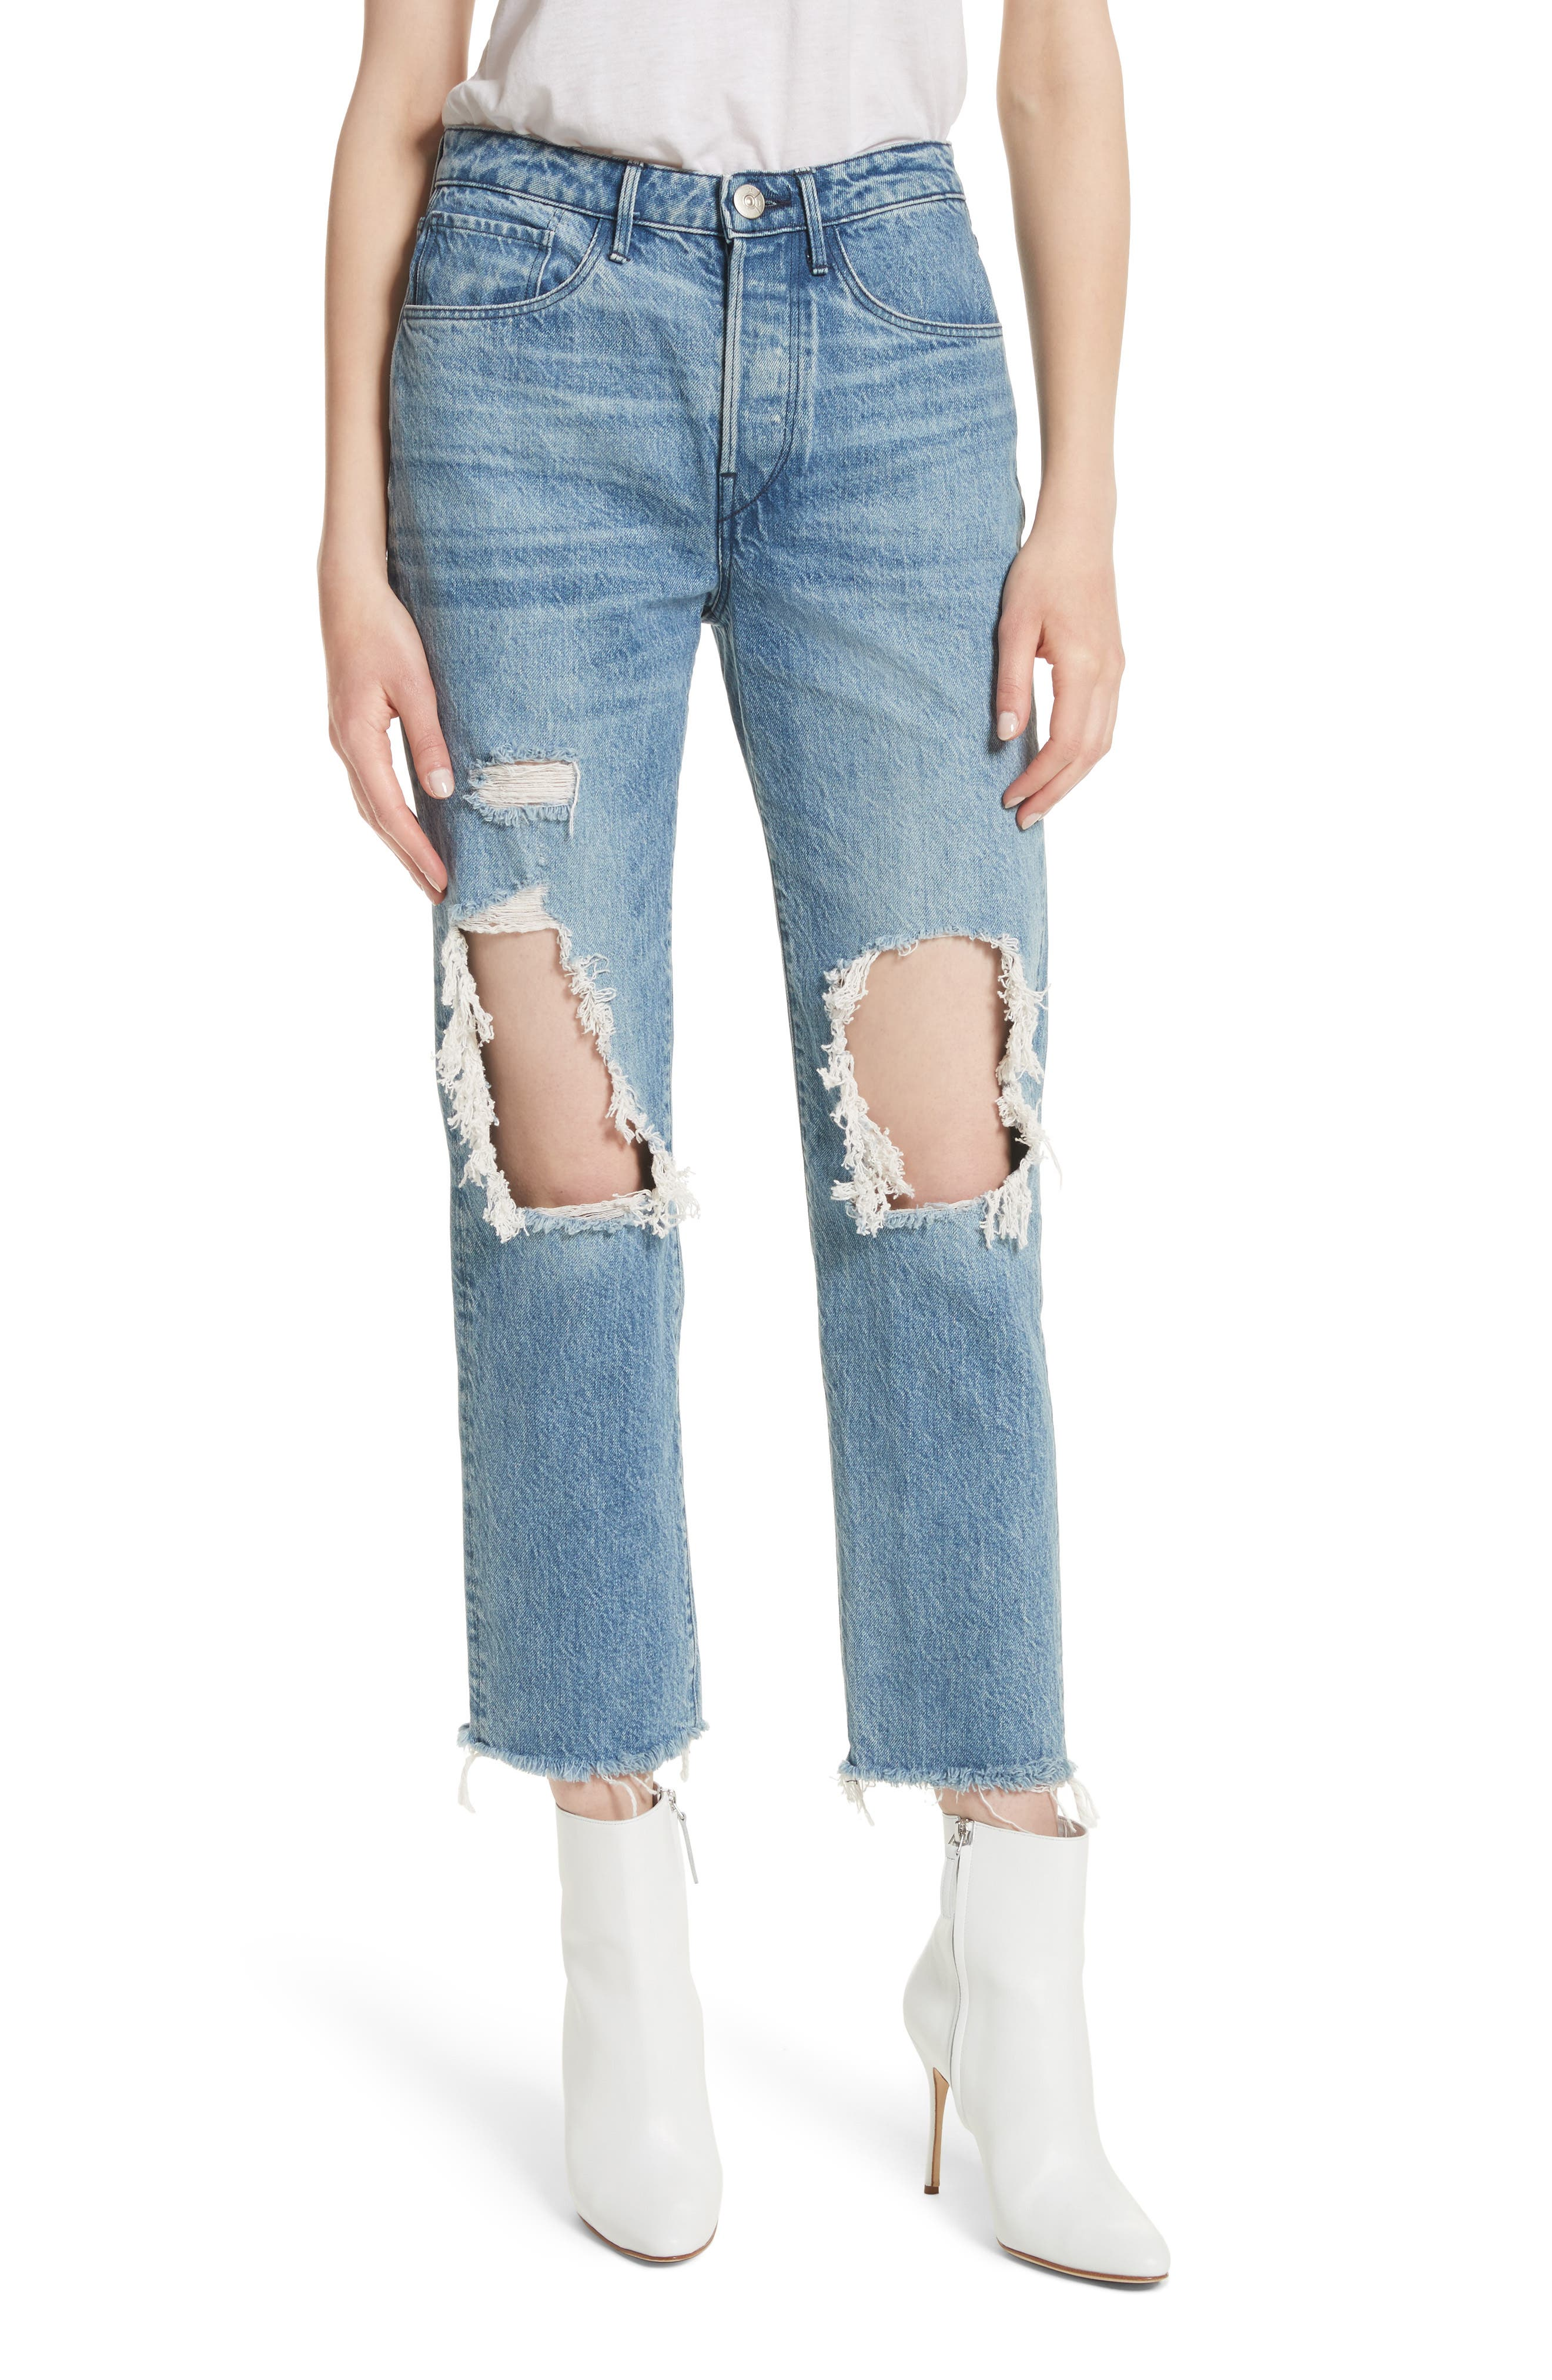 W3 Higher Ground Ripped Crop Boyfriend Jeans,                             Main thumbnail 1, color,                             Clutch